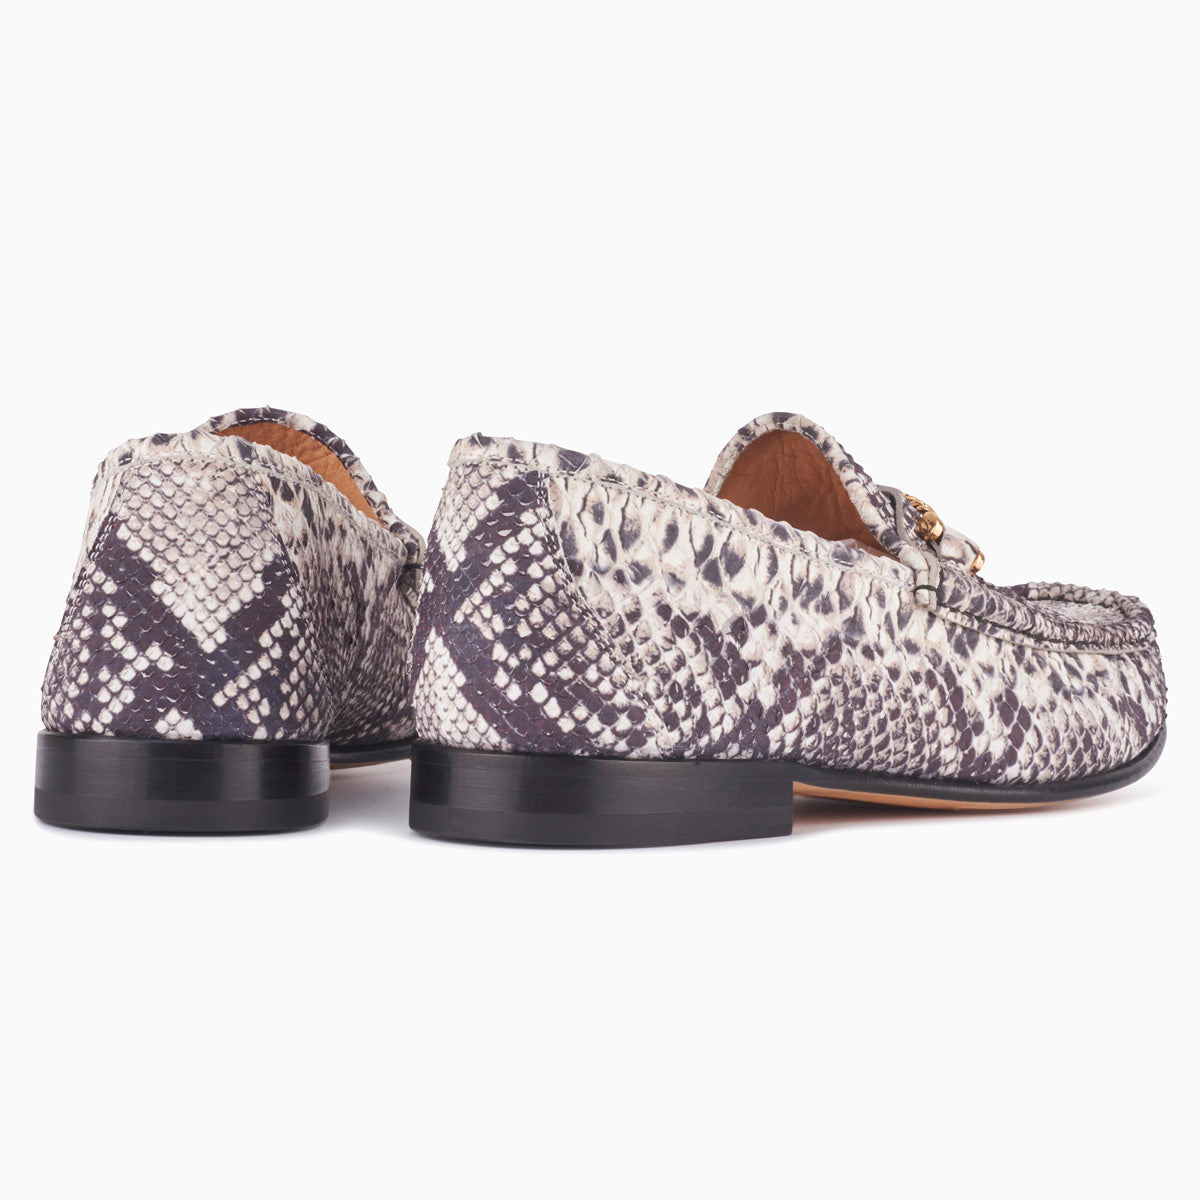 Hyusto Mick Moccasin rock python printed leather back view